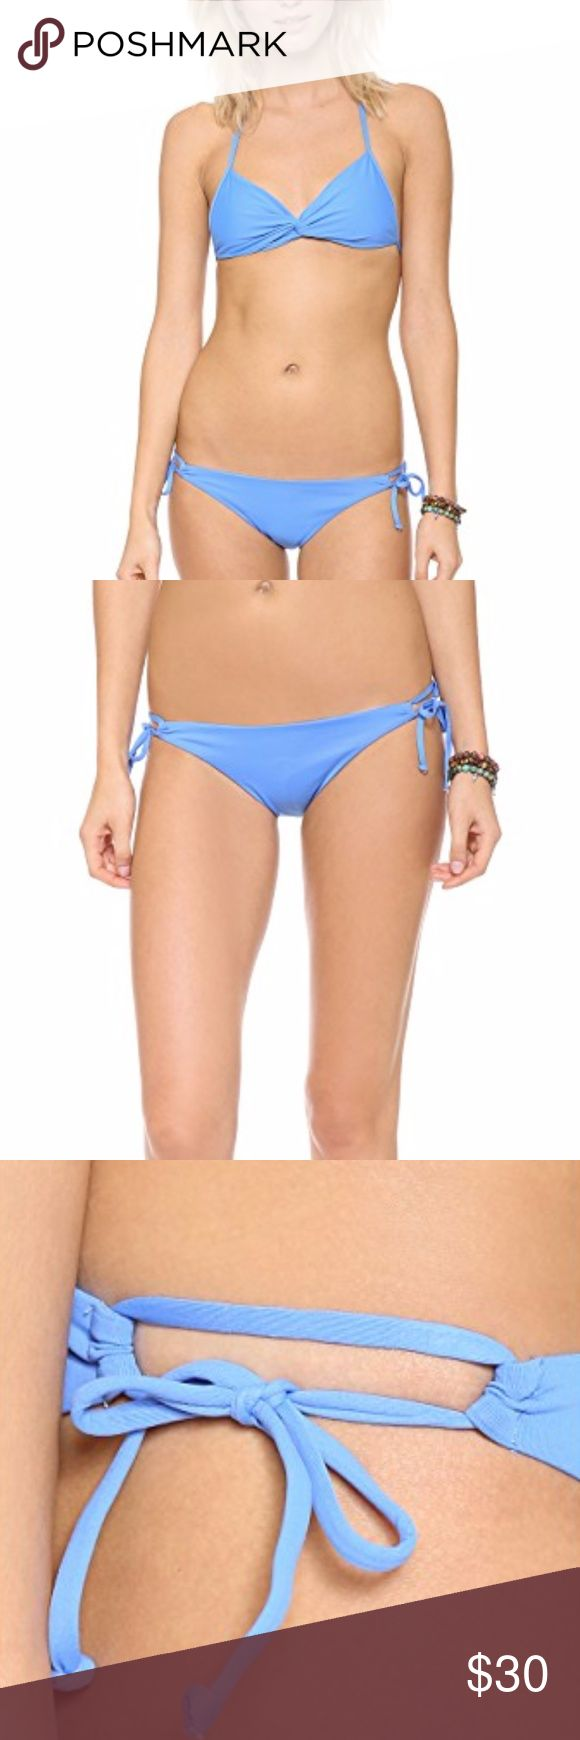 L*Space Sensual Solids Dandy Keyhole Bikini Bottom L*Space Sensual Solids Dandy Keyhole Bikini Bottoms  Ties cinch the cutout sides on these L*Space bikini bottoms, and ruching adds subtle texture to the back. Lined.  80% nylon/20% spandex. Hand wash. Made in the USA. l*space Swim Bikinis